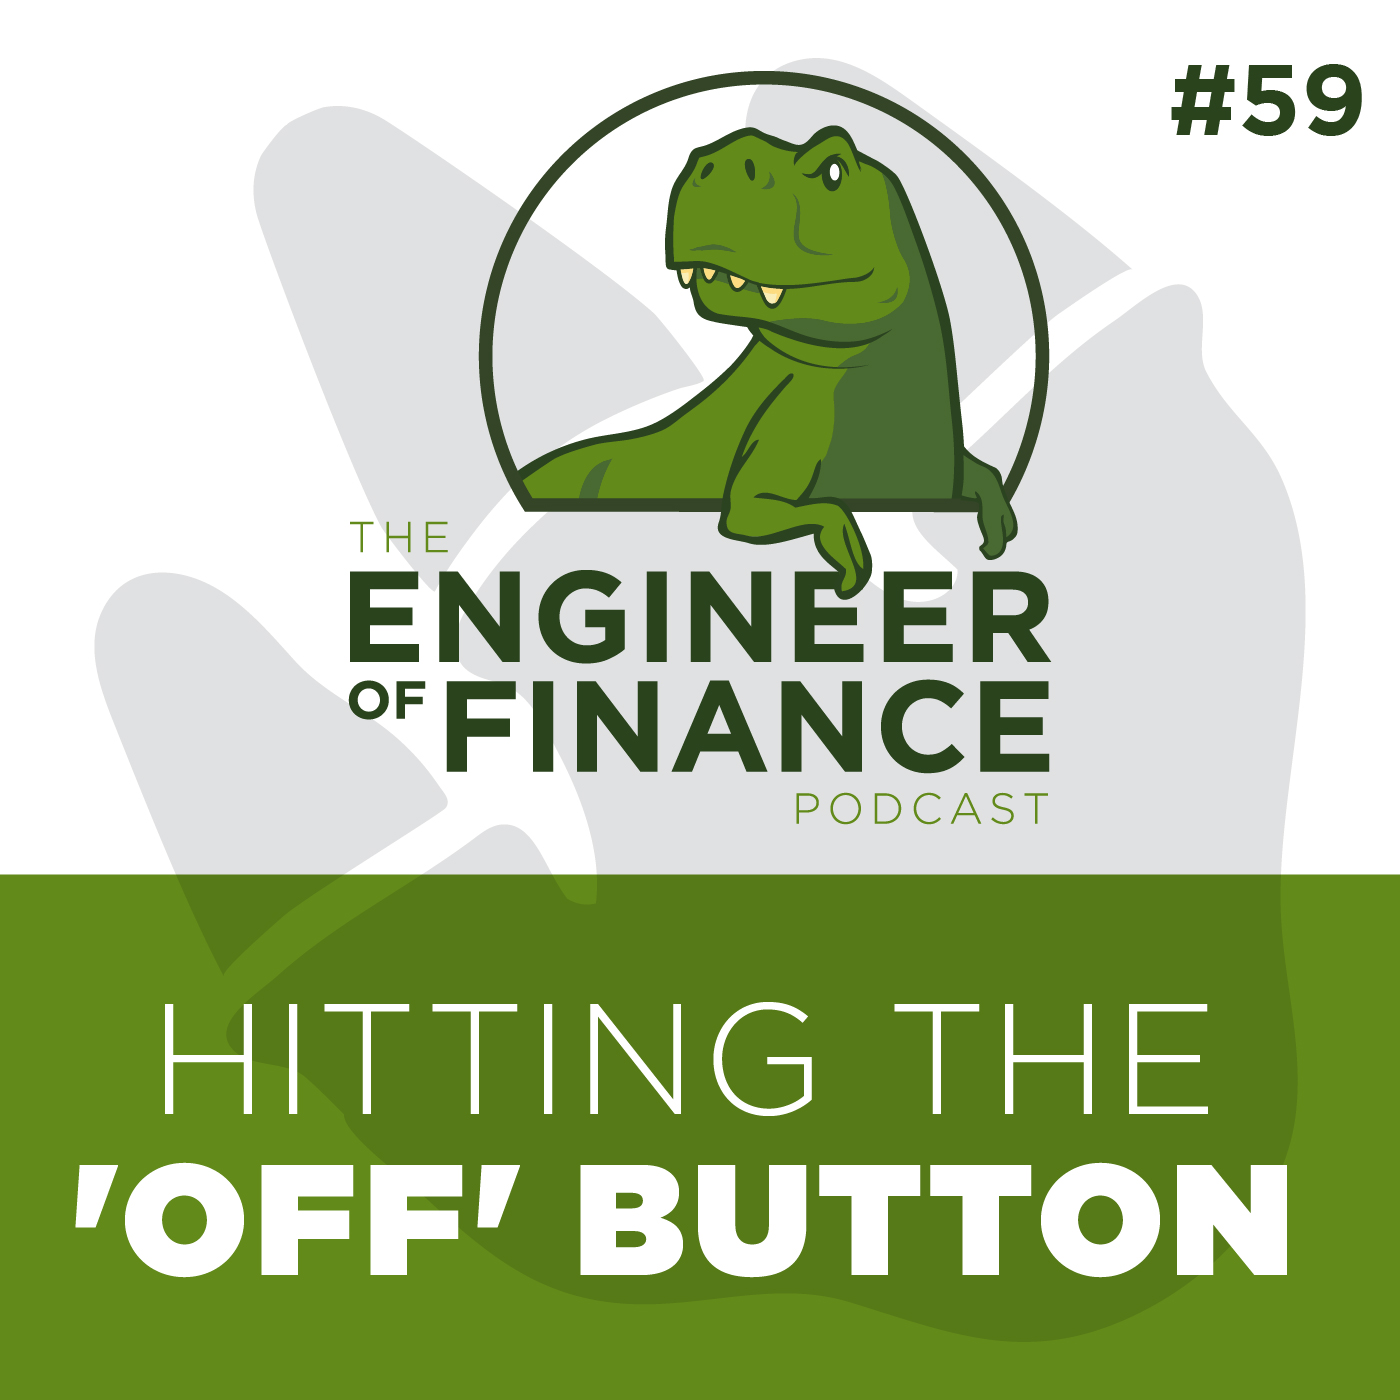 Hitting The 'OFF' Button  – Episode 59